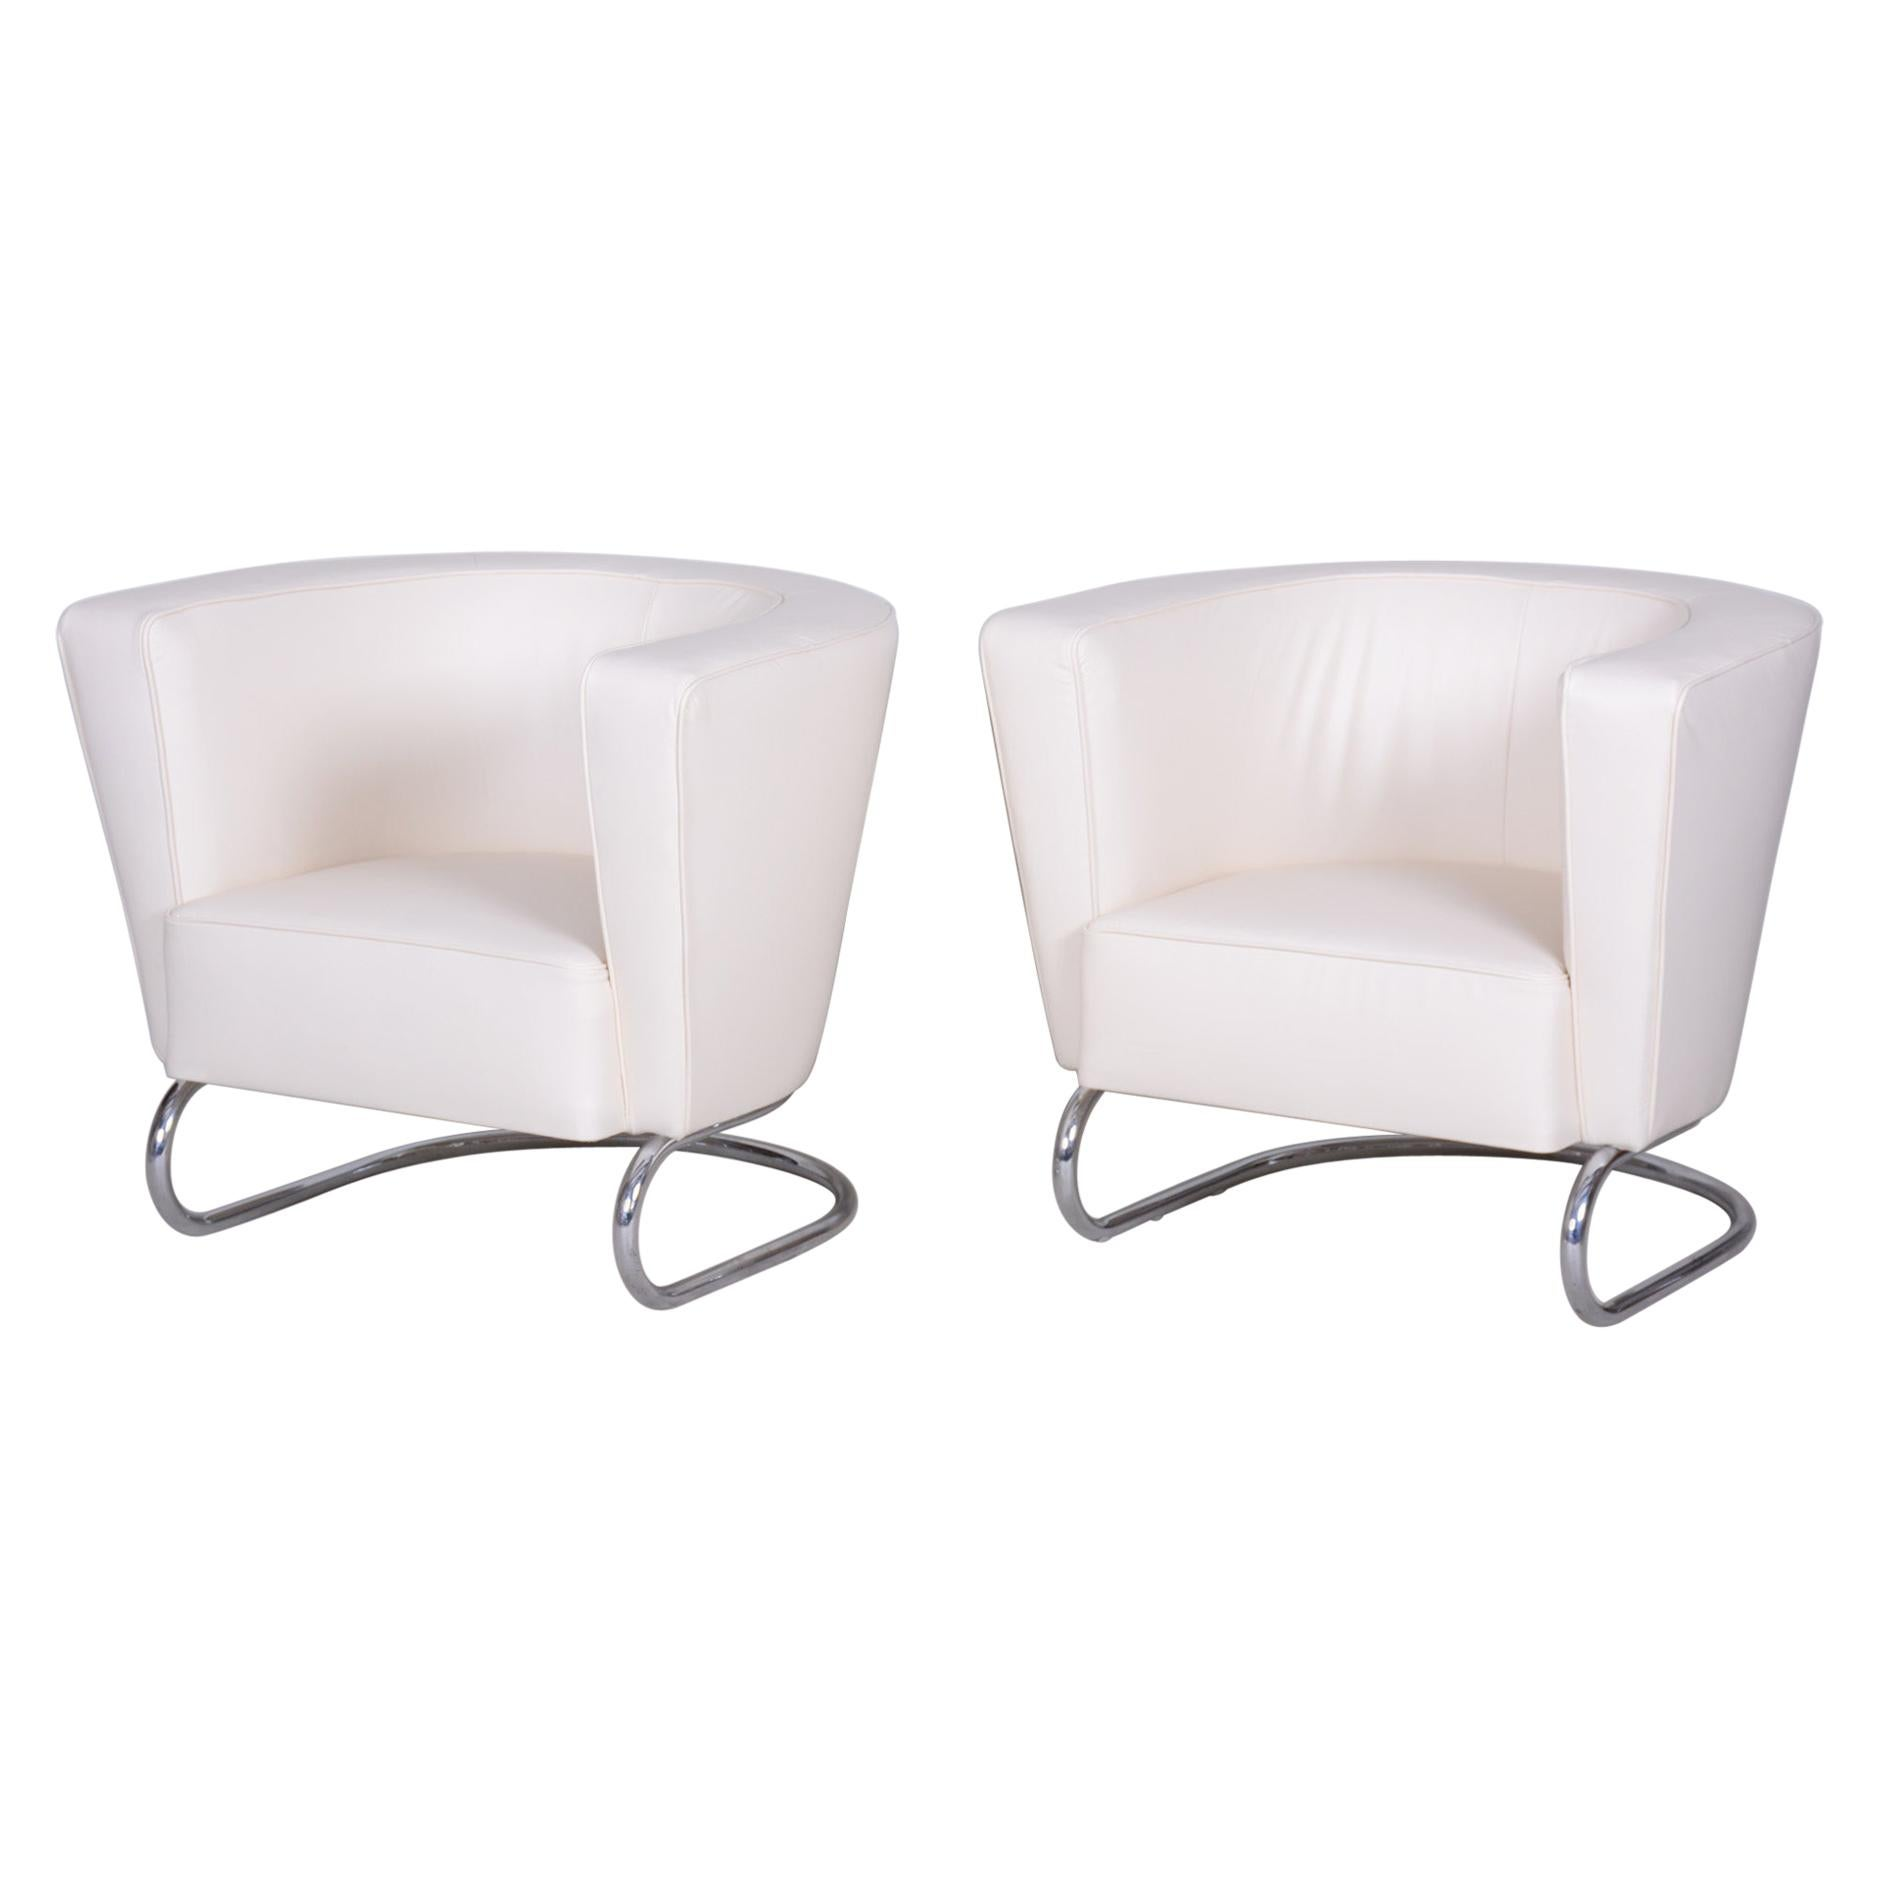 Pair of White Art Deco Armchairs from Czechoslovakia by Jindrich Halabala, 1930s